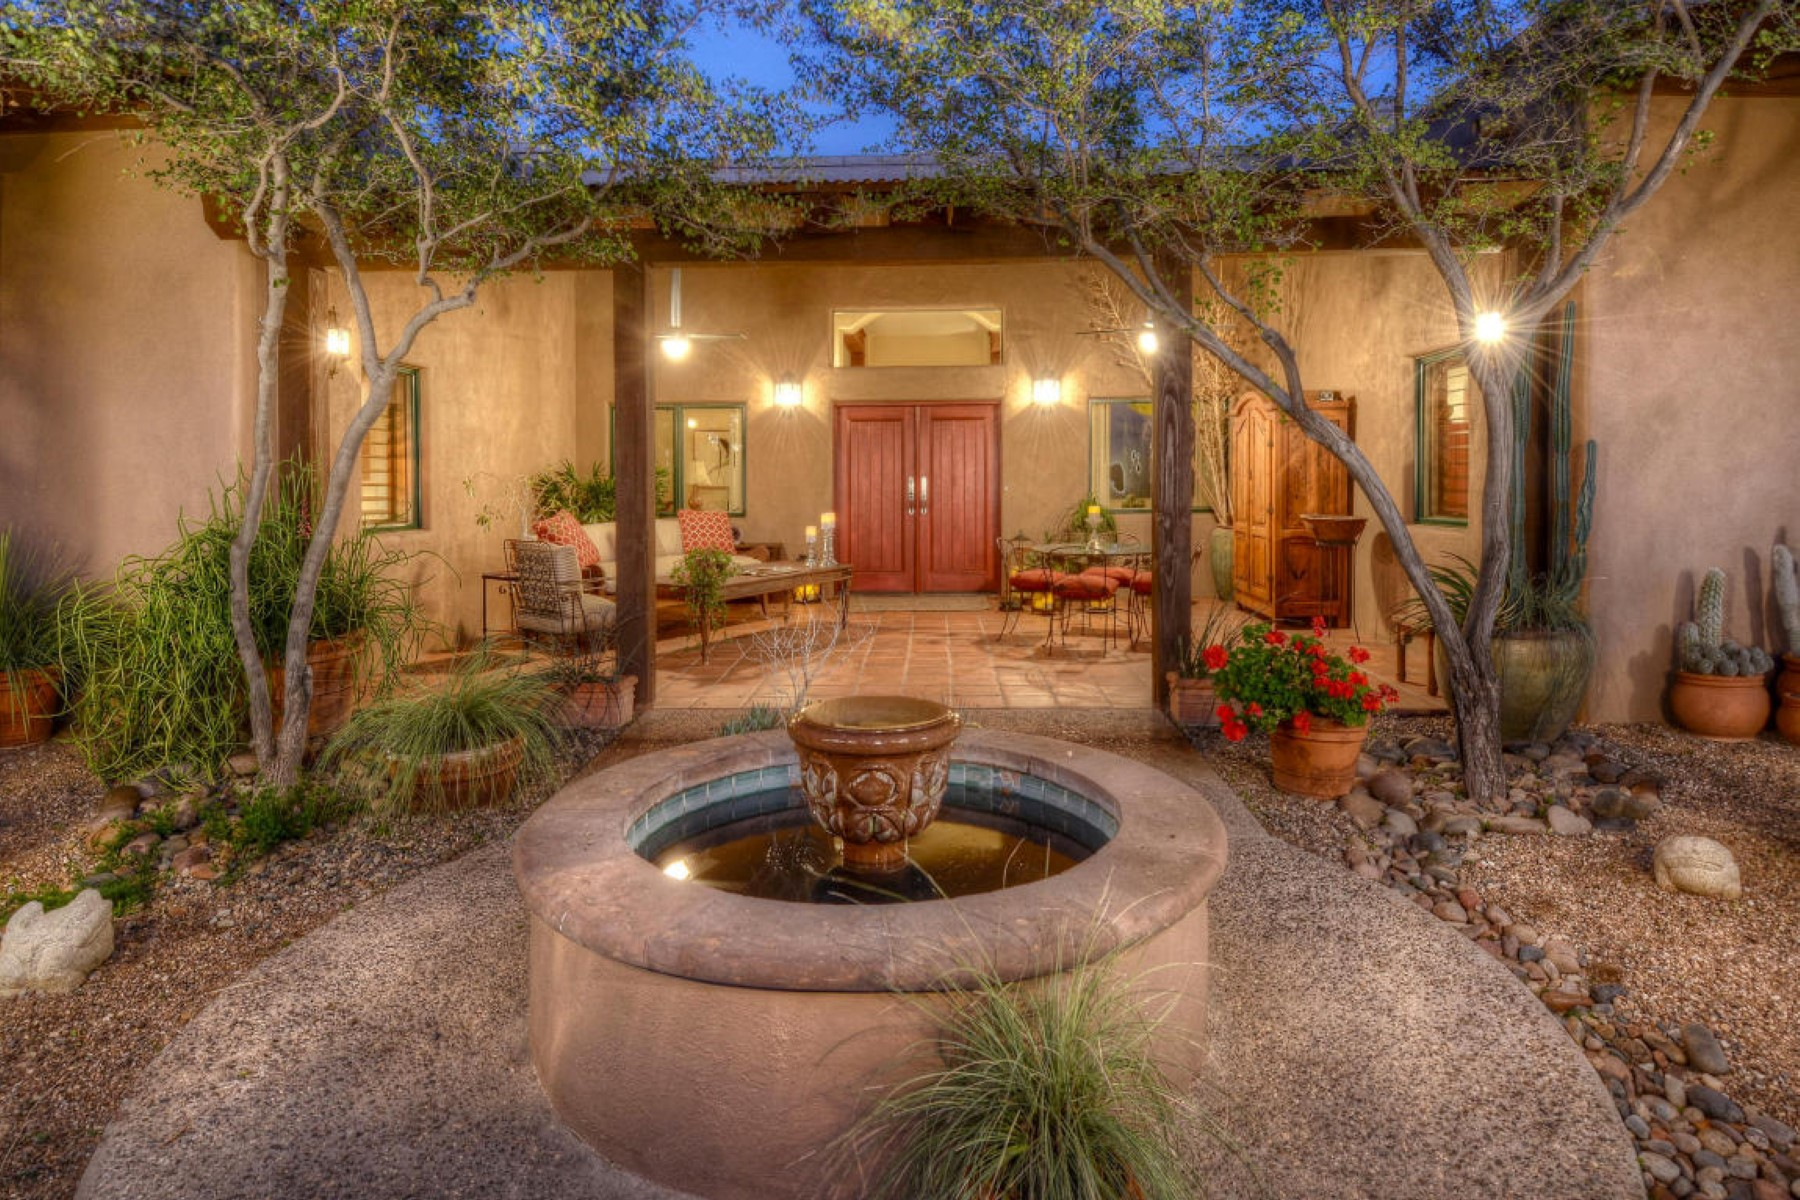 Moradia para Venda às Exquisite Hacienda Ranch secluded 10 acre retreat 13450 N Teal Blue Trail Tucson, Arizona, 85742 Estados Unidos